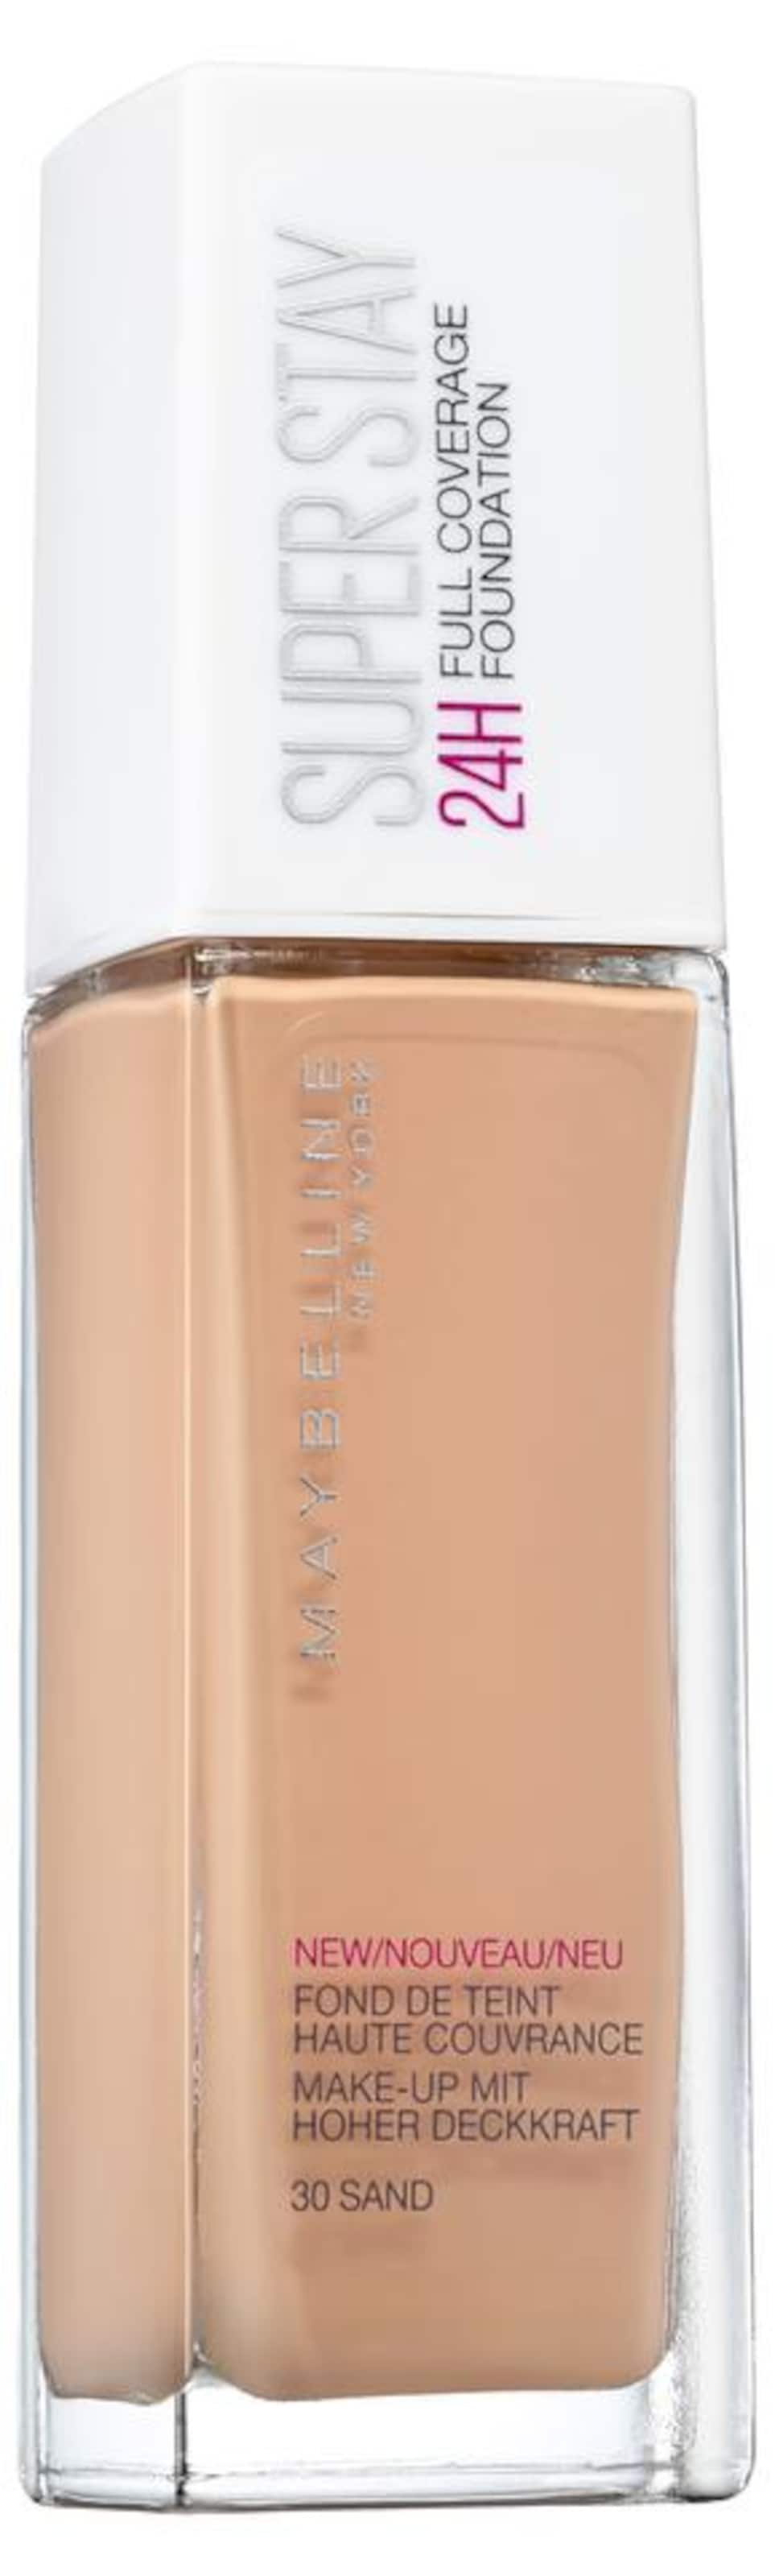 New Make Maybelline York Sand 'superstay up 24h' In thrdQs